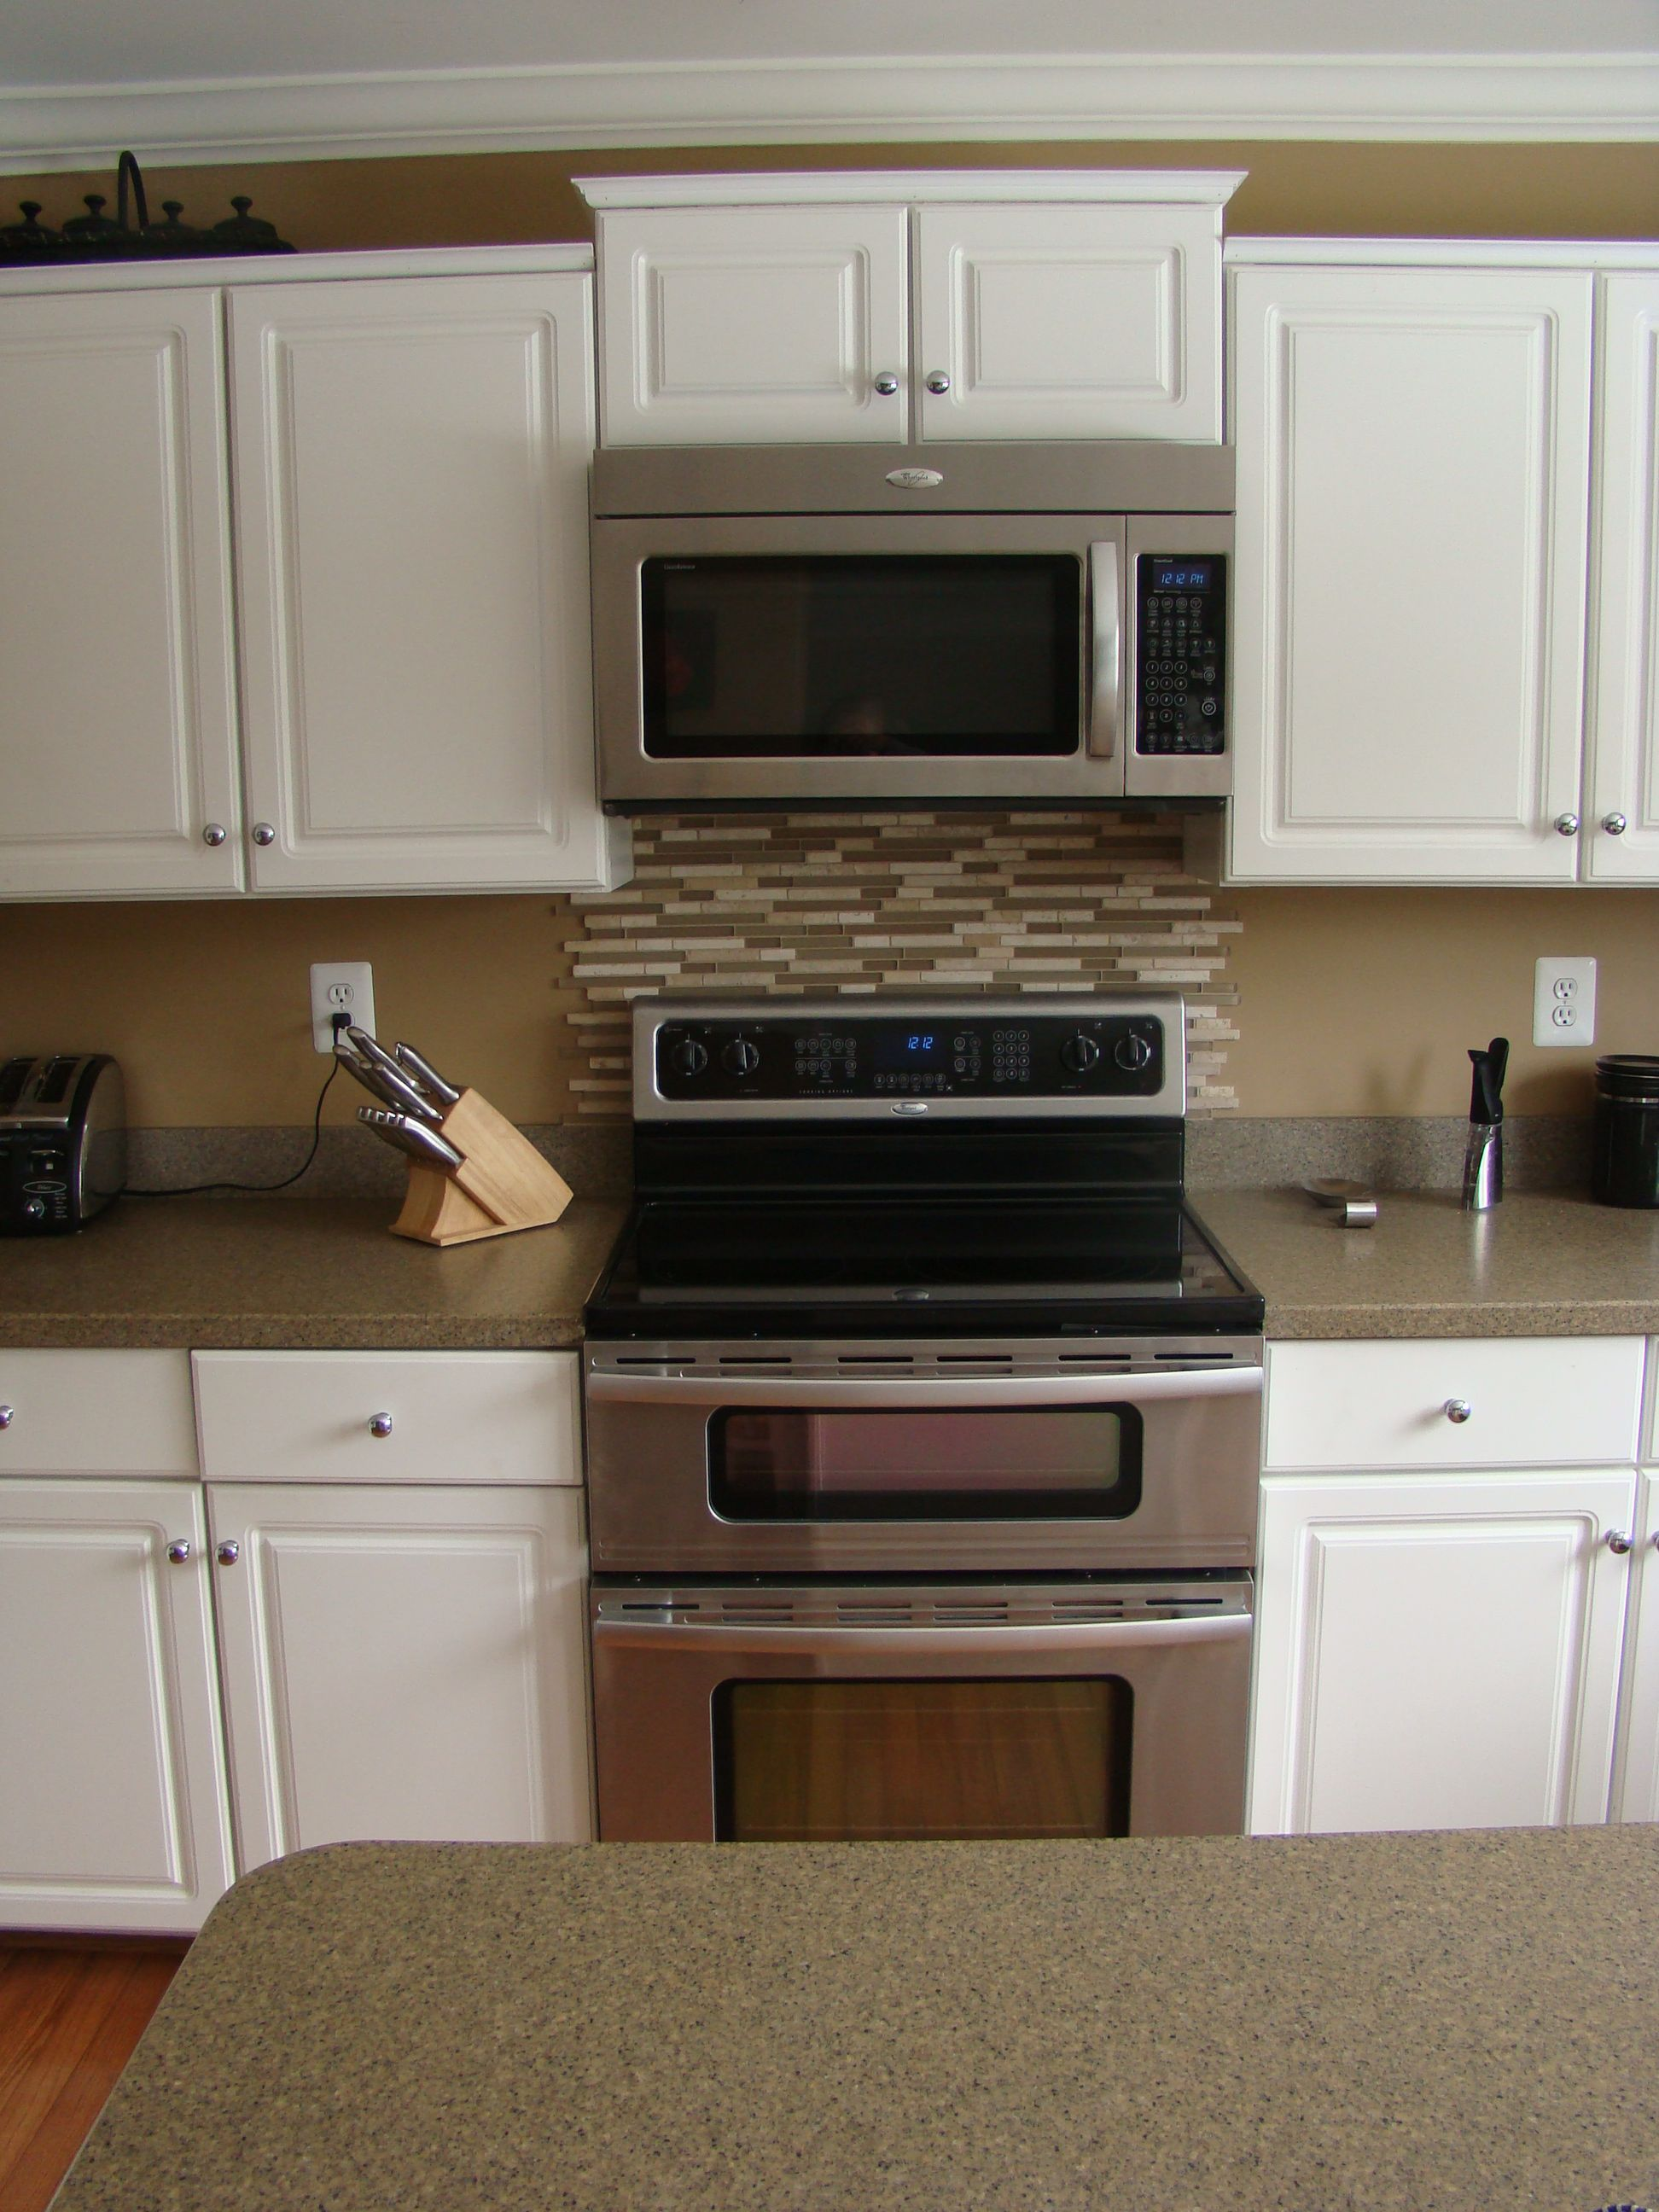 Stove Backsplash Kitchen Tiles